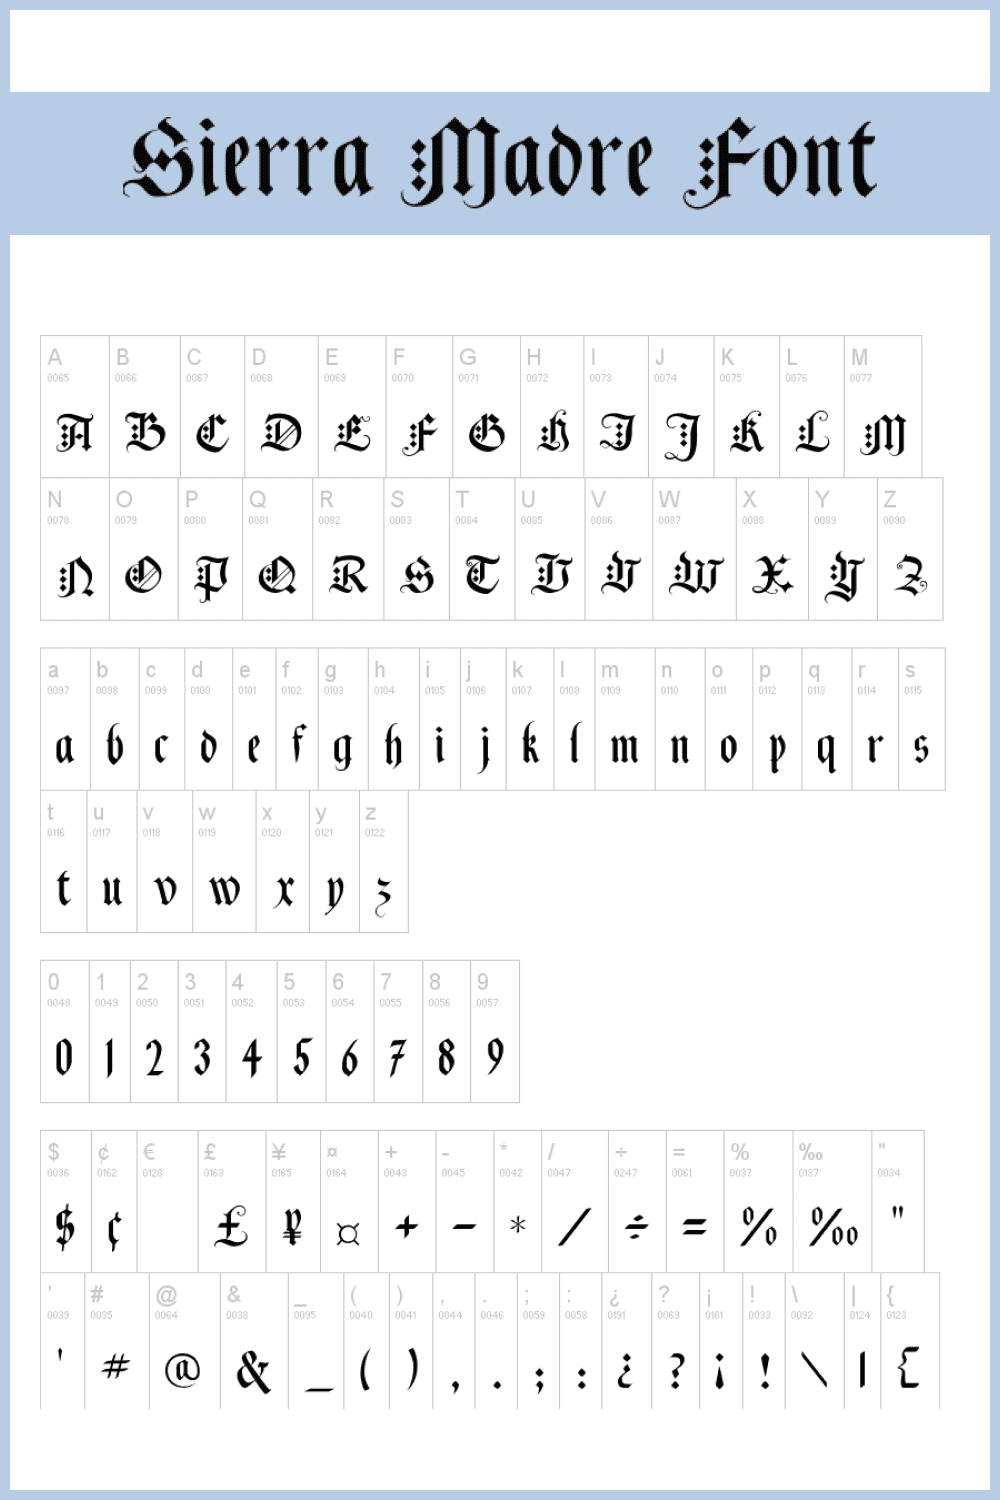 This font was once used by knights to send love letters to their wives.